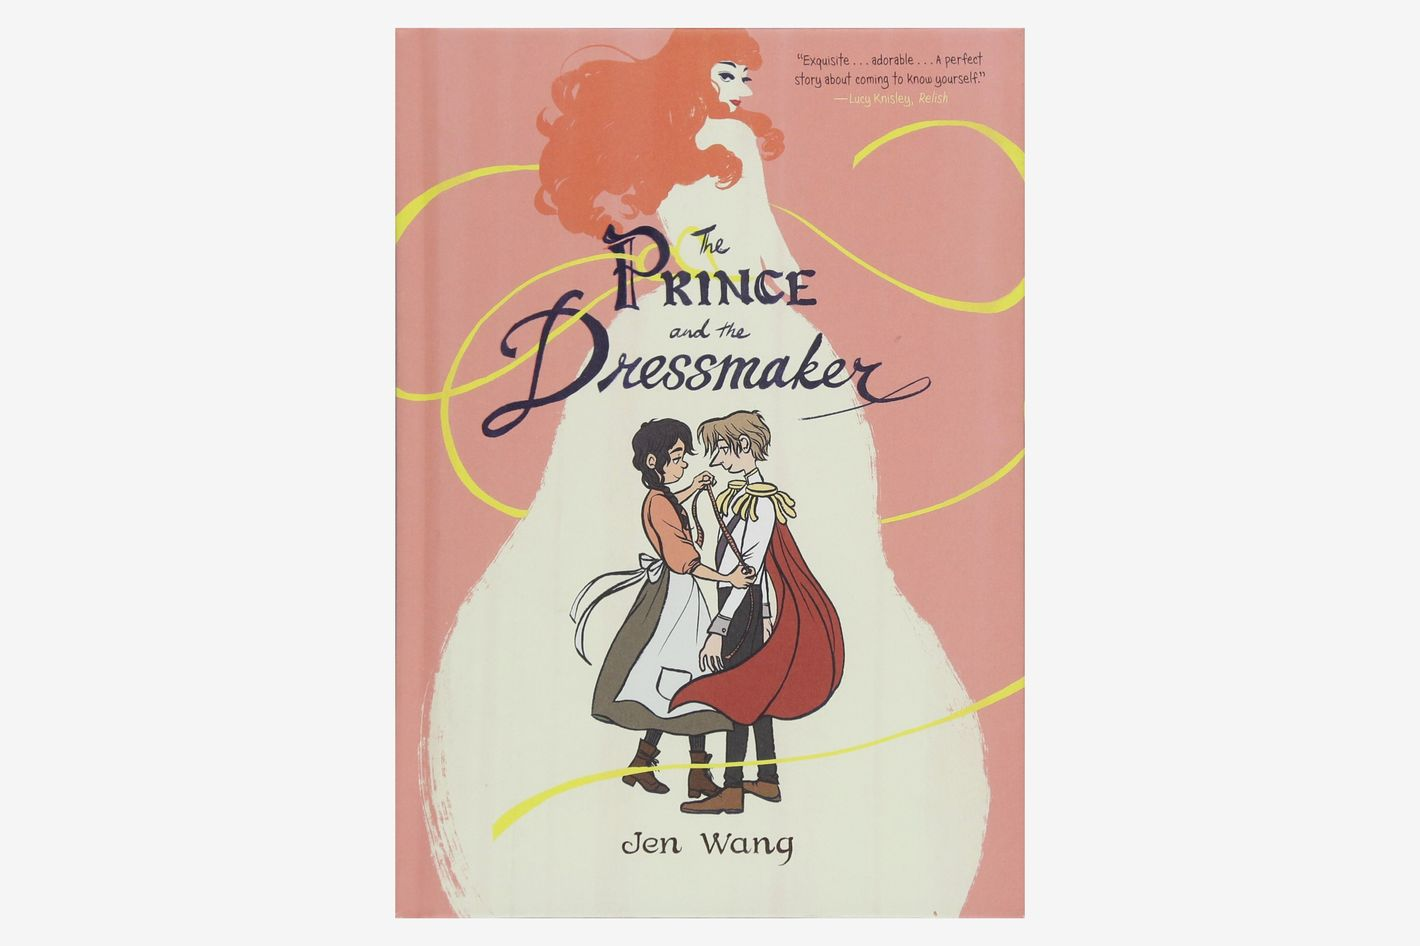 <em>The Prince and the Dressmaker</em>, by Jen Wang